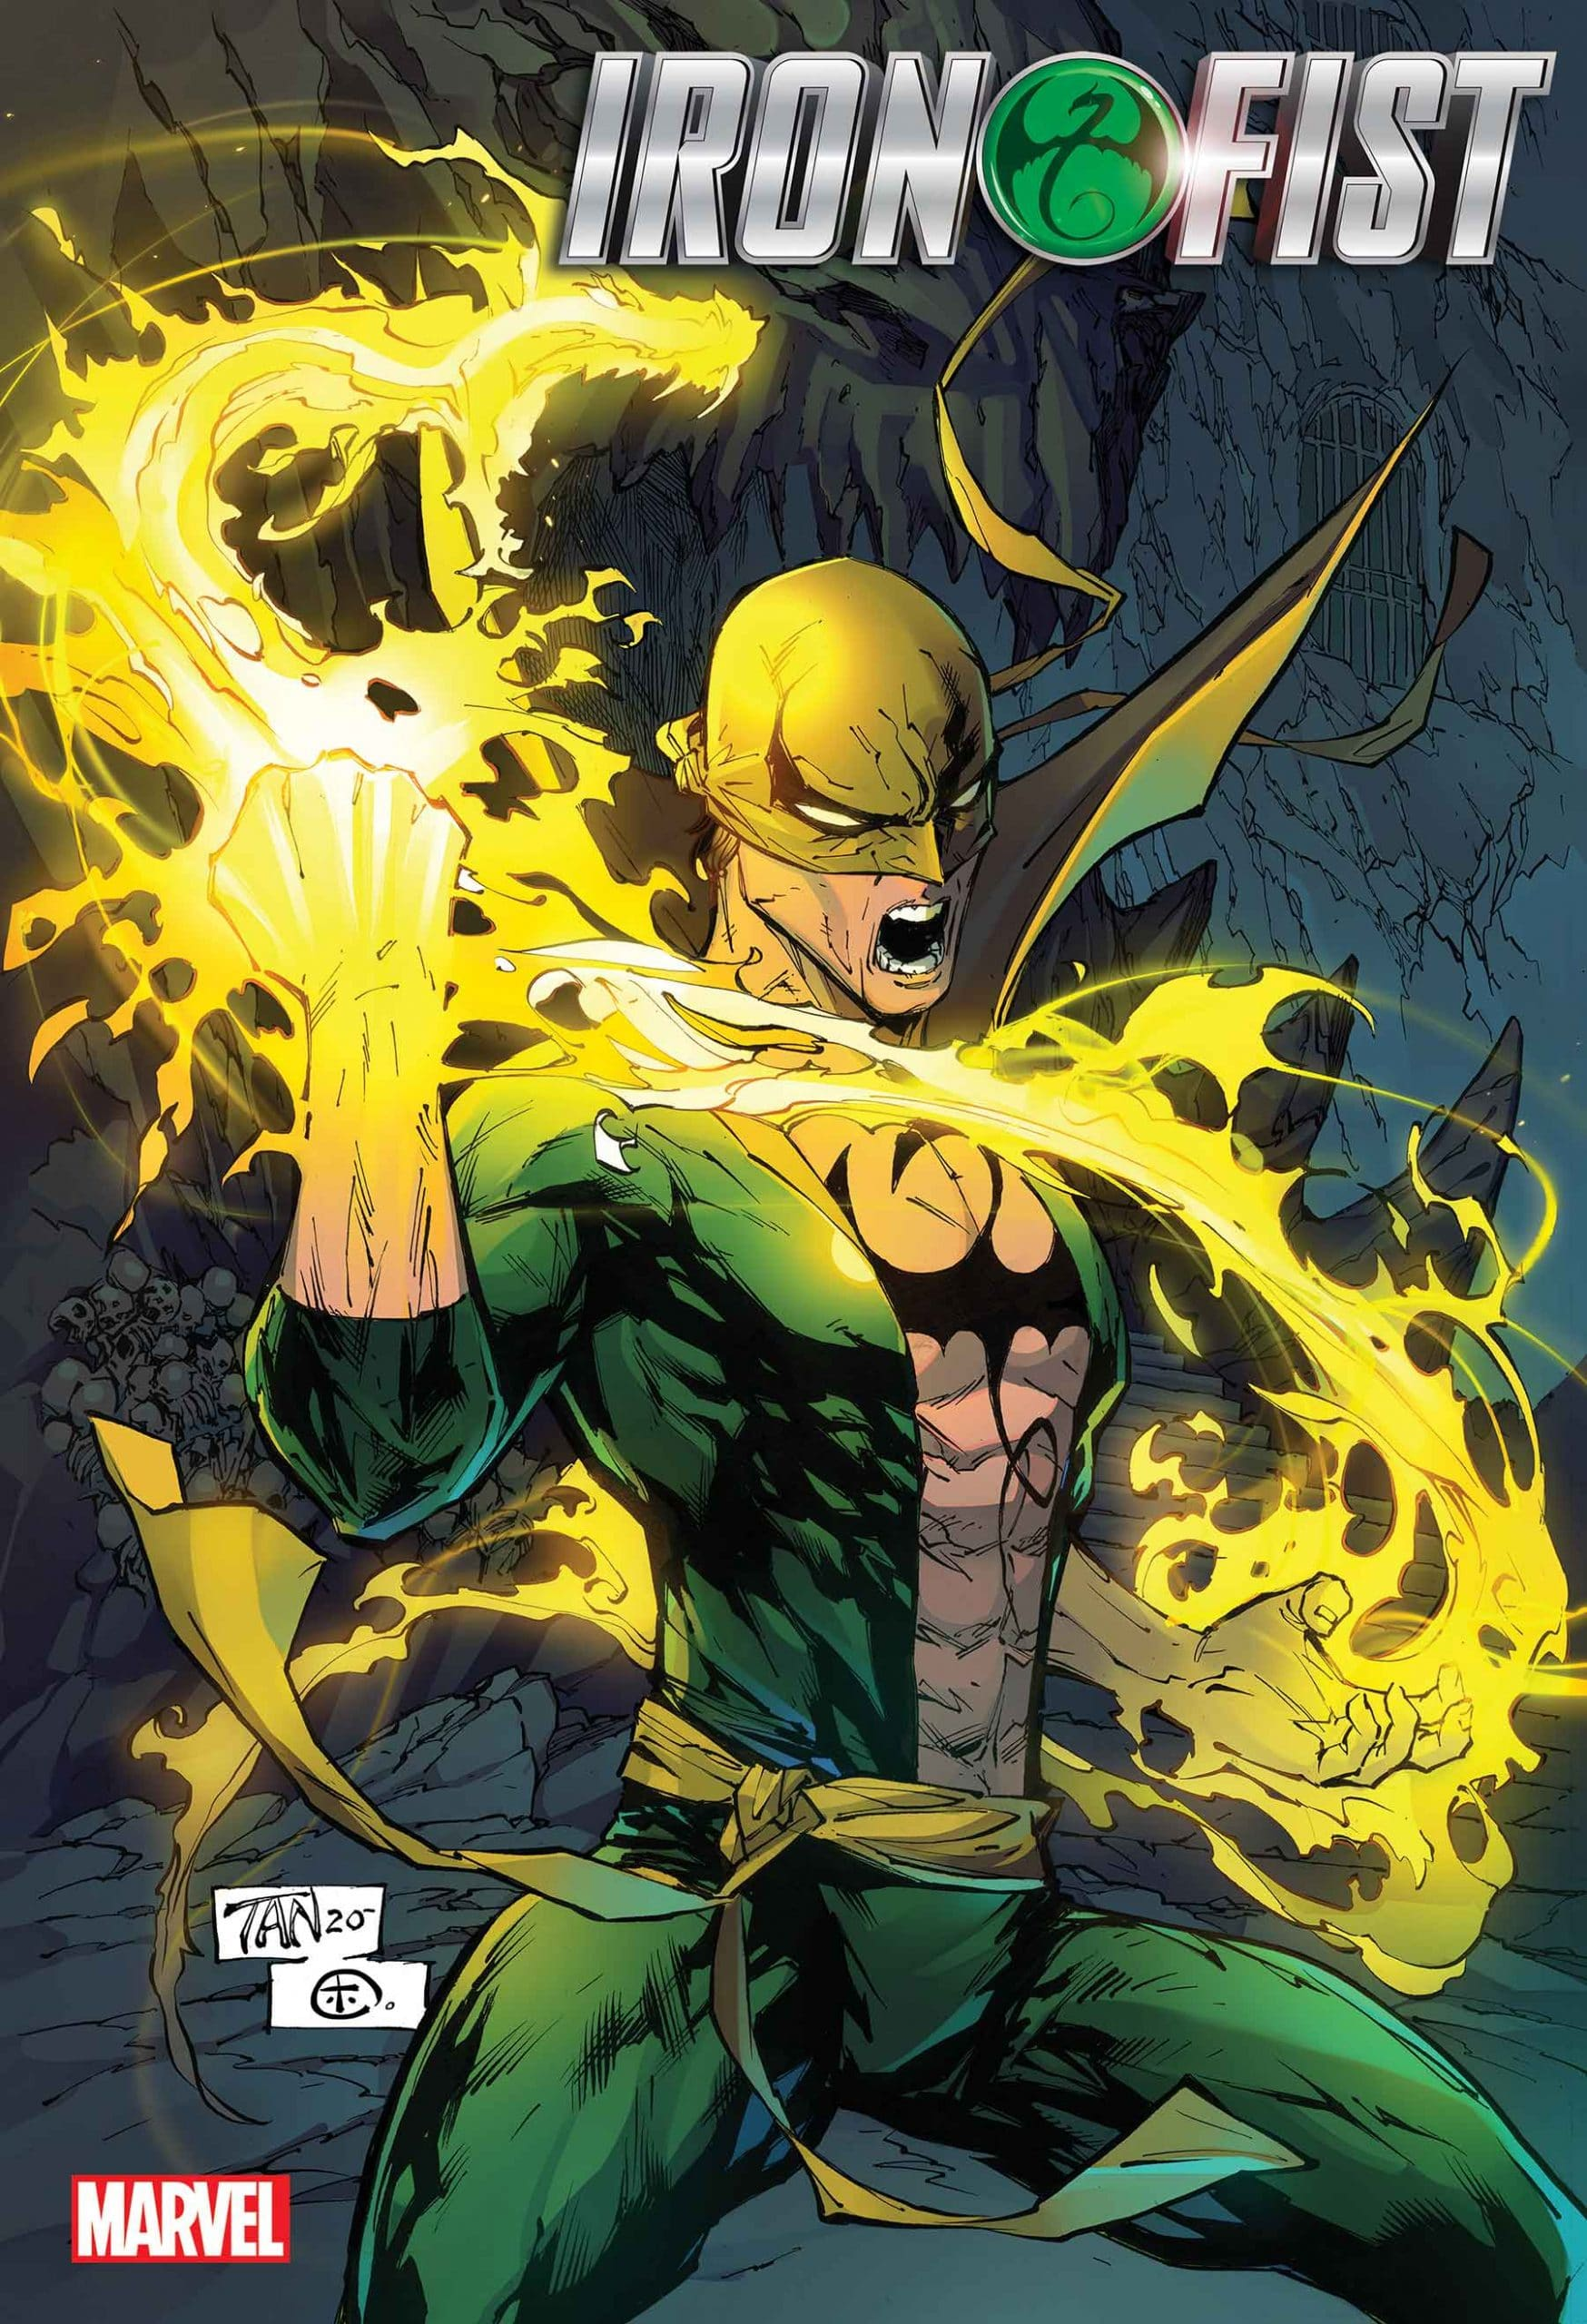 New Iron Fist Mini-Series On The Way From Marvel Comics